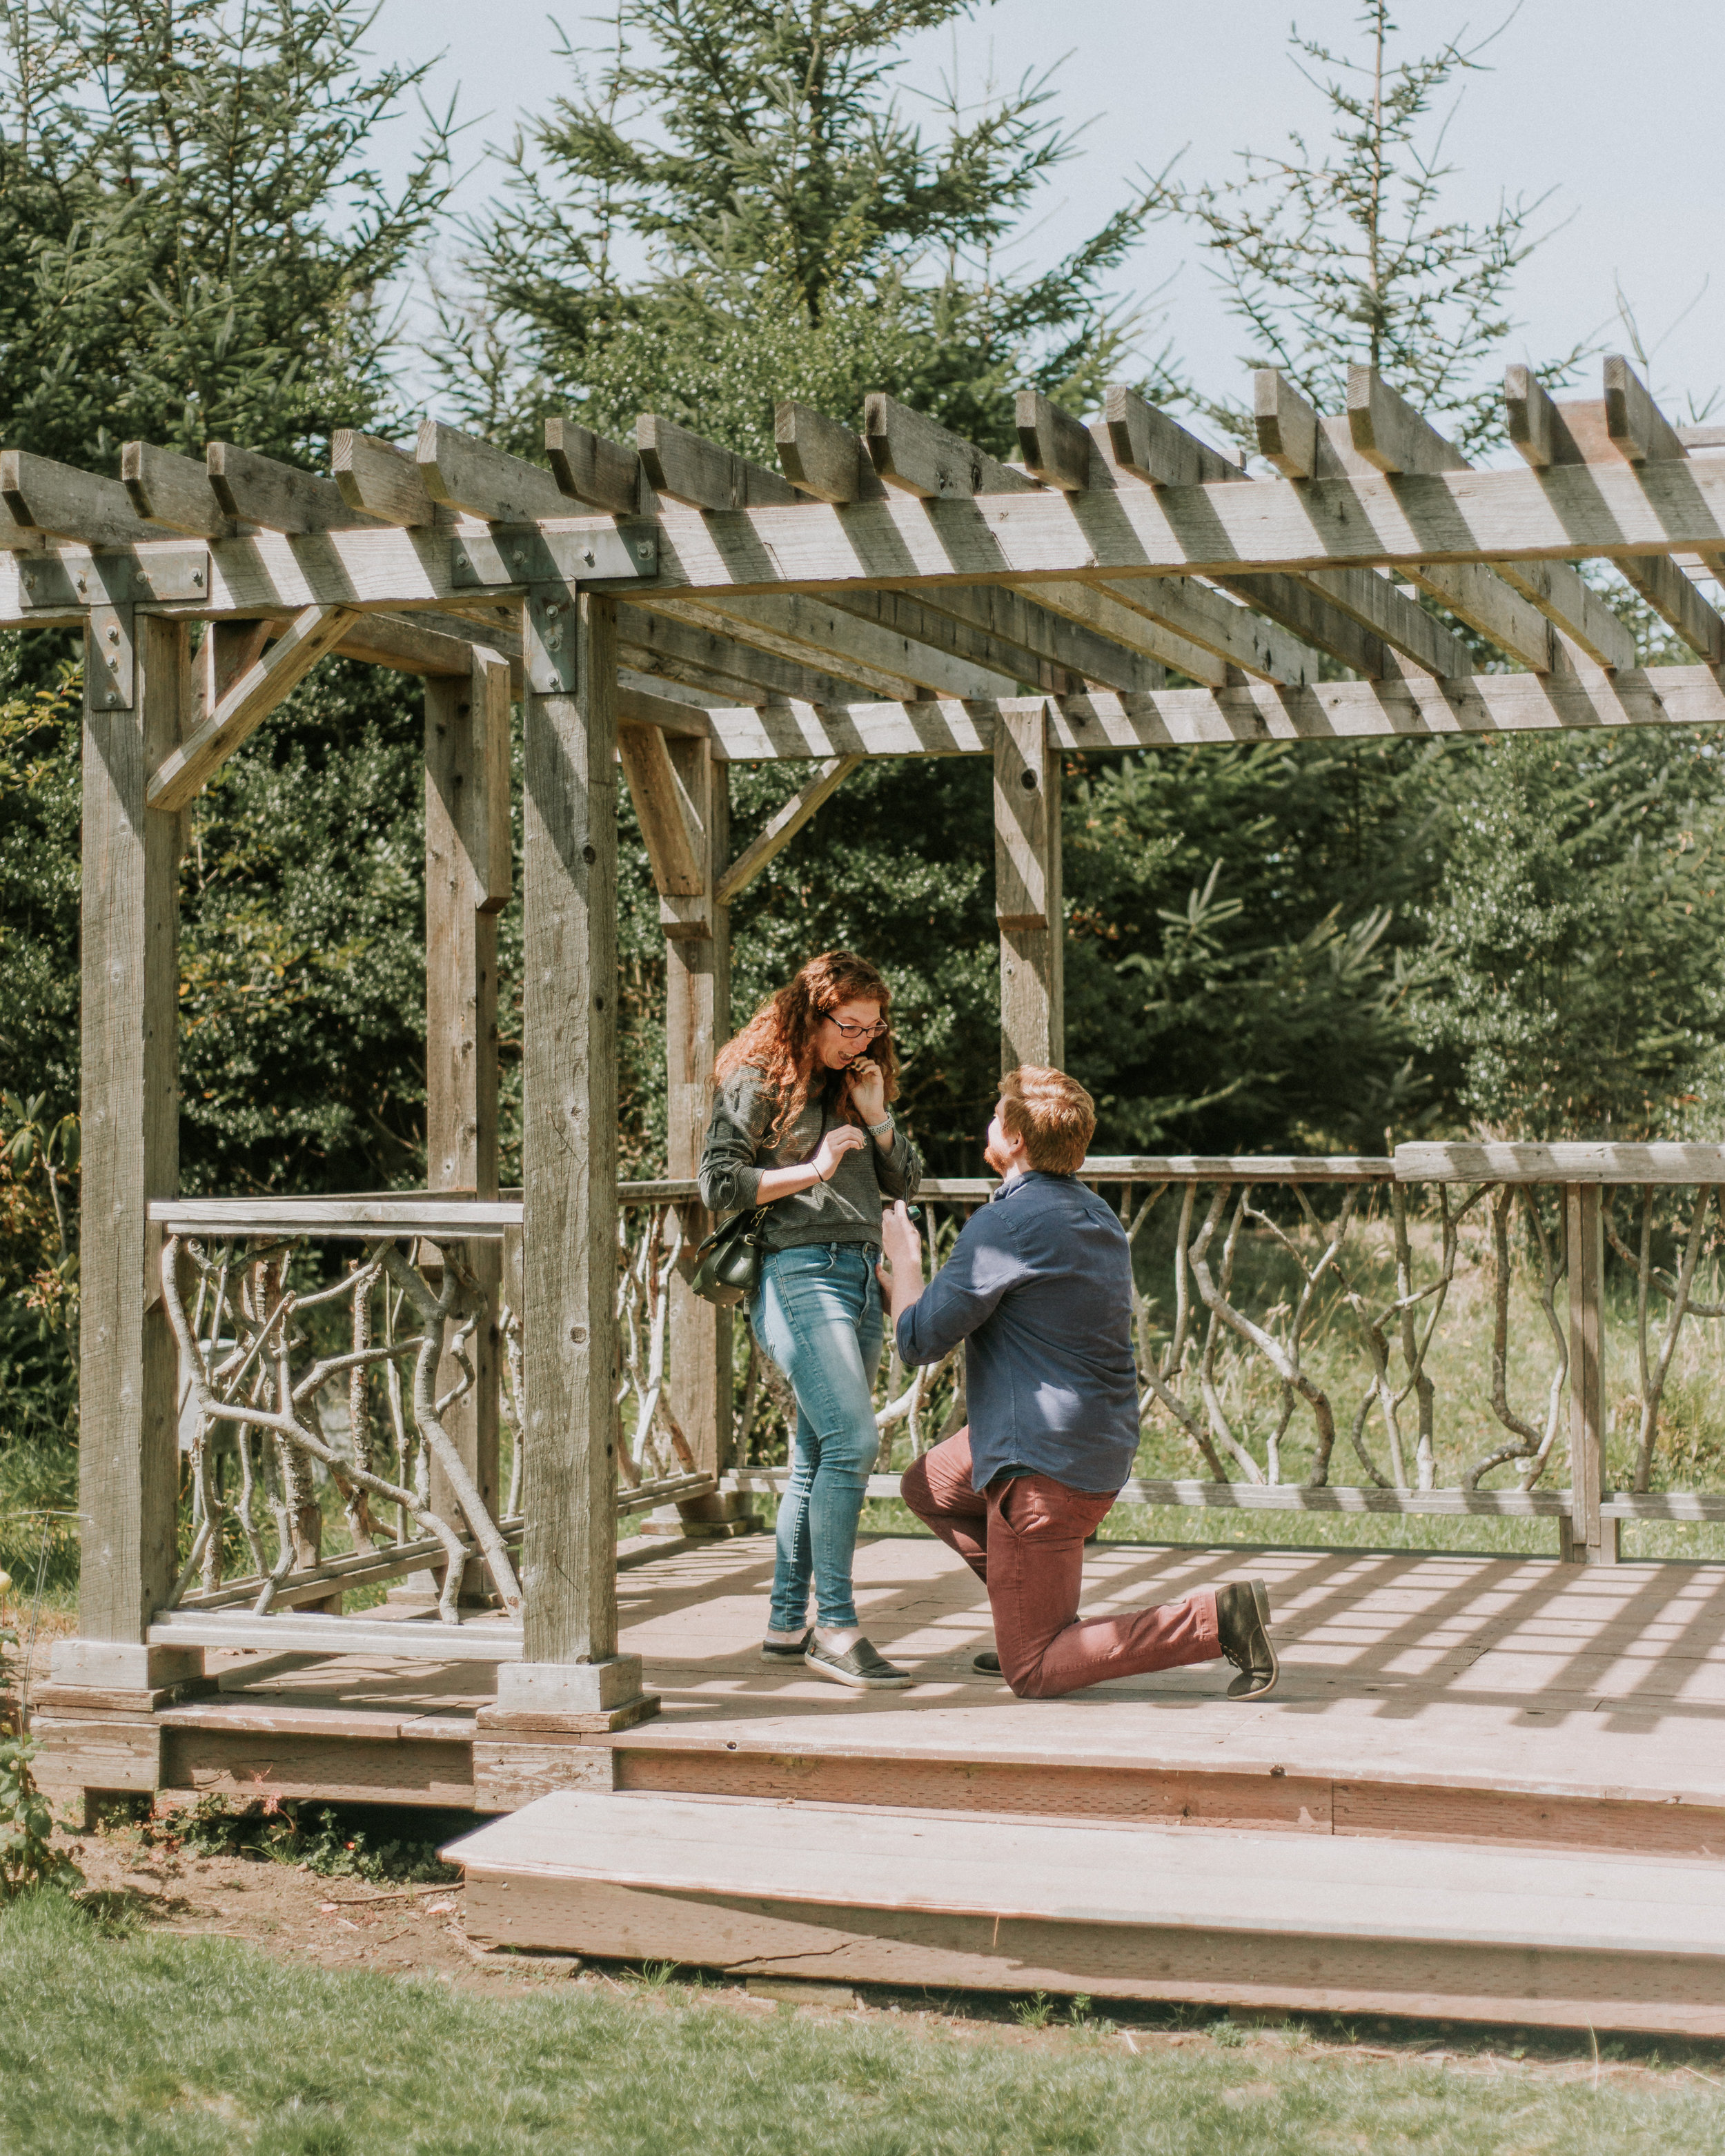 mendocino coast botanical gardens+wedding+photographer